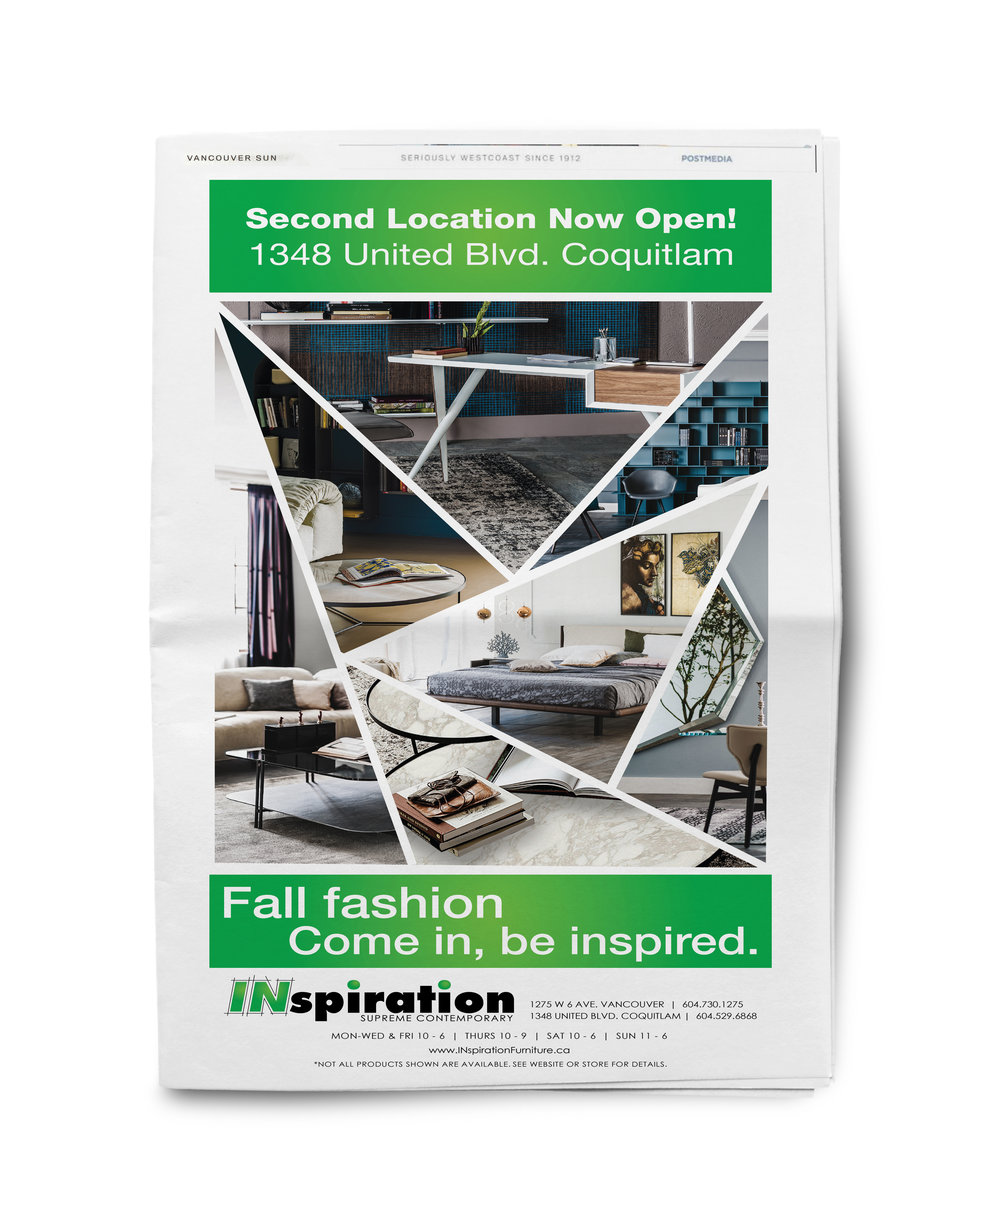 INspiration_Vancouver_Newspaper30.jpg